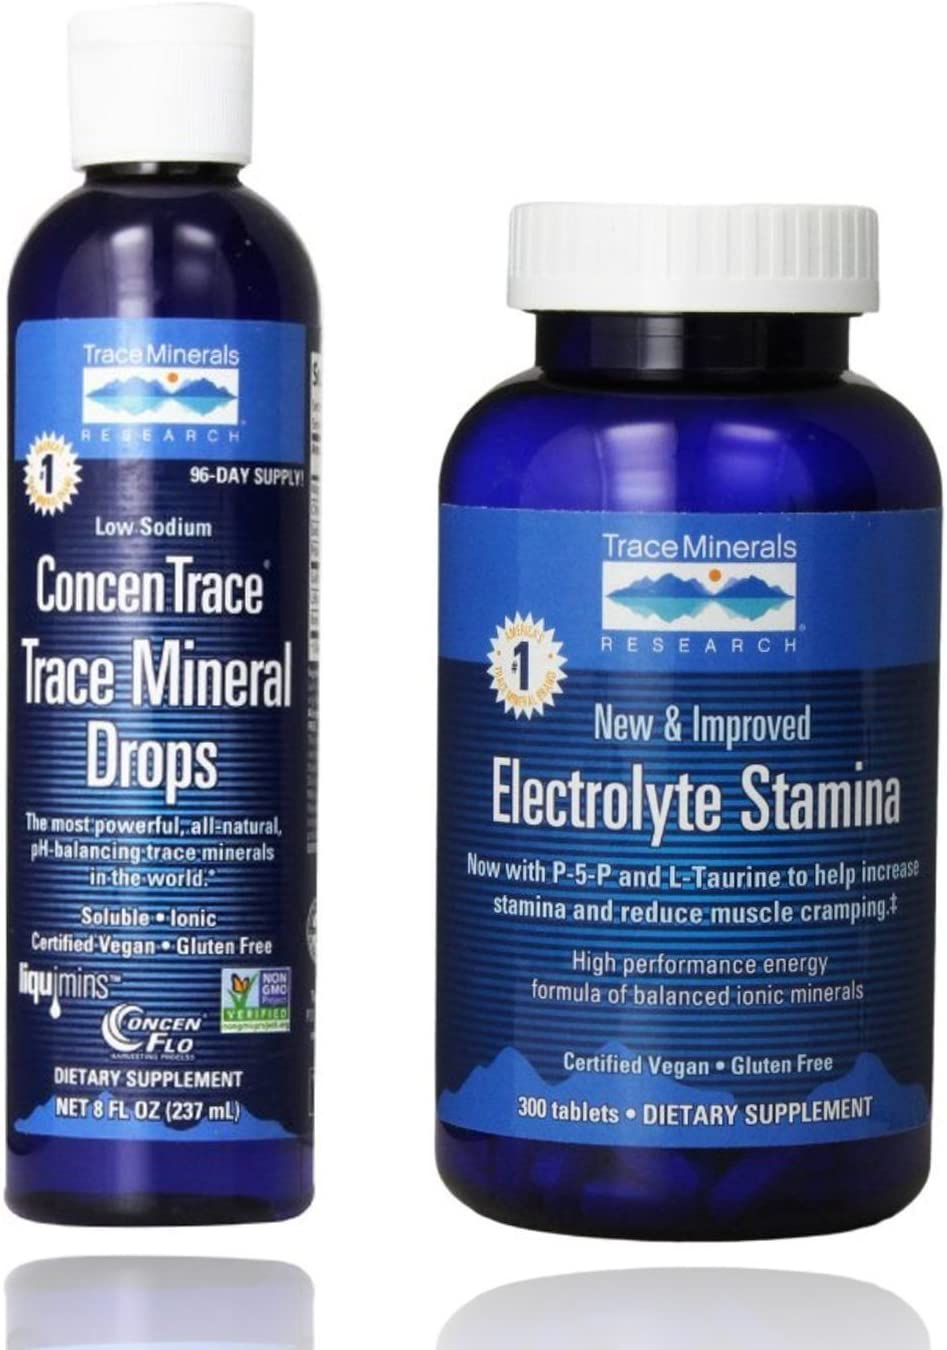 Trace Minerals Research - Concentrace Trace Mineral Drops, 8 fl oz Liquid & Research Performance Electrolyte Stamina, High Performance Energy Formula, 300 Tablets - Bundle Pack Exclusive